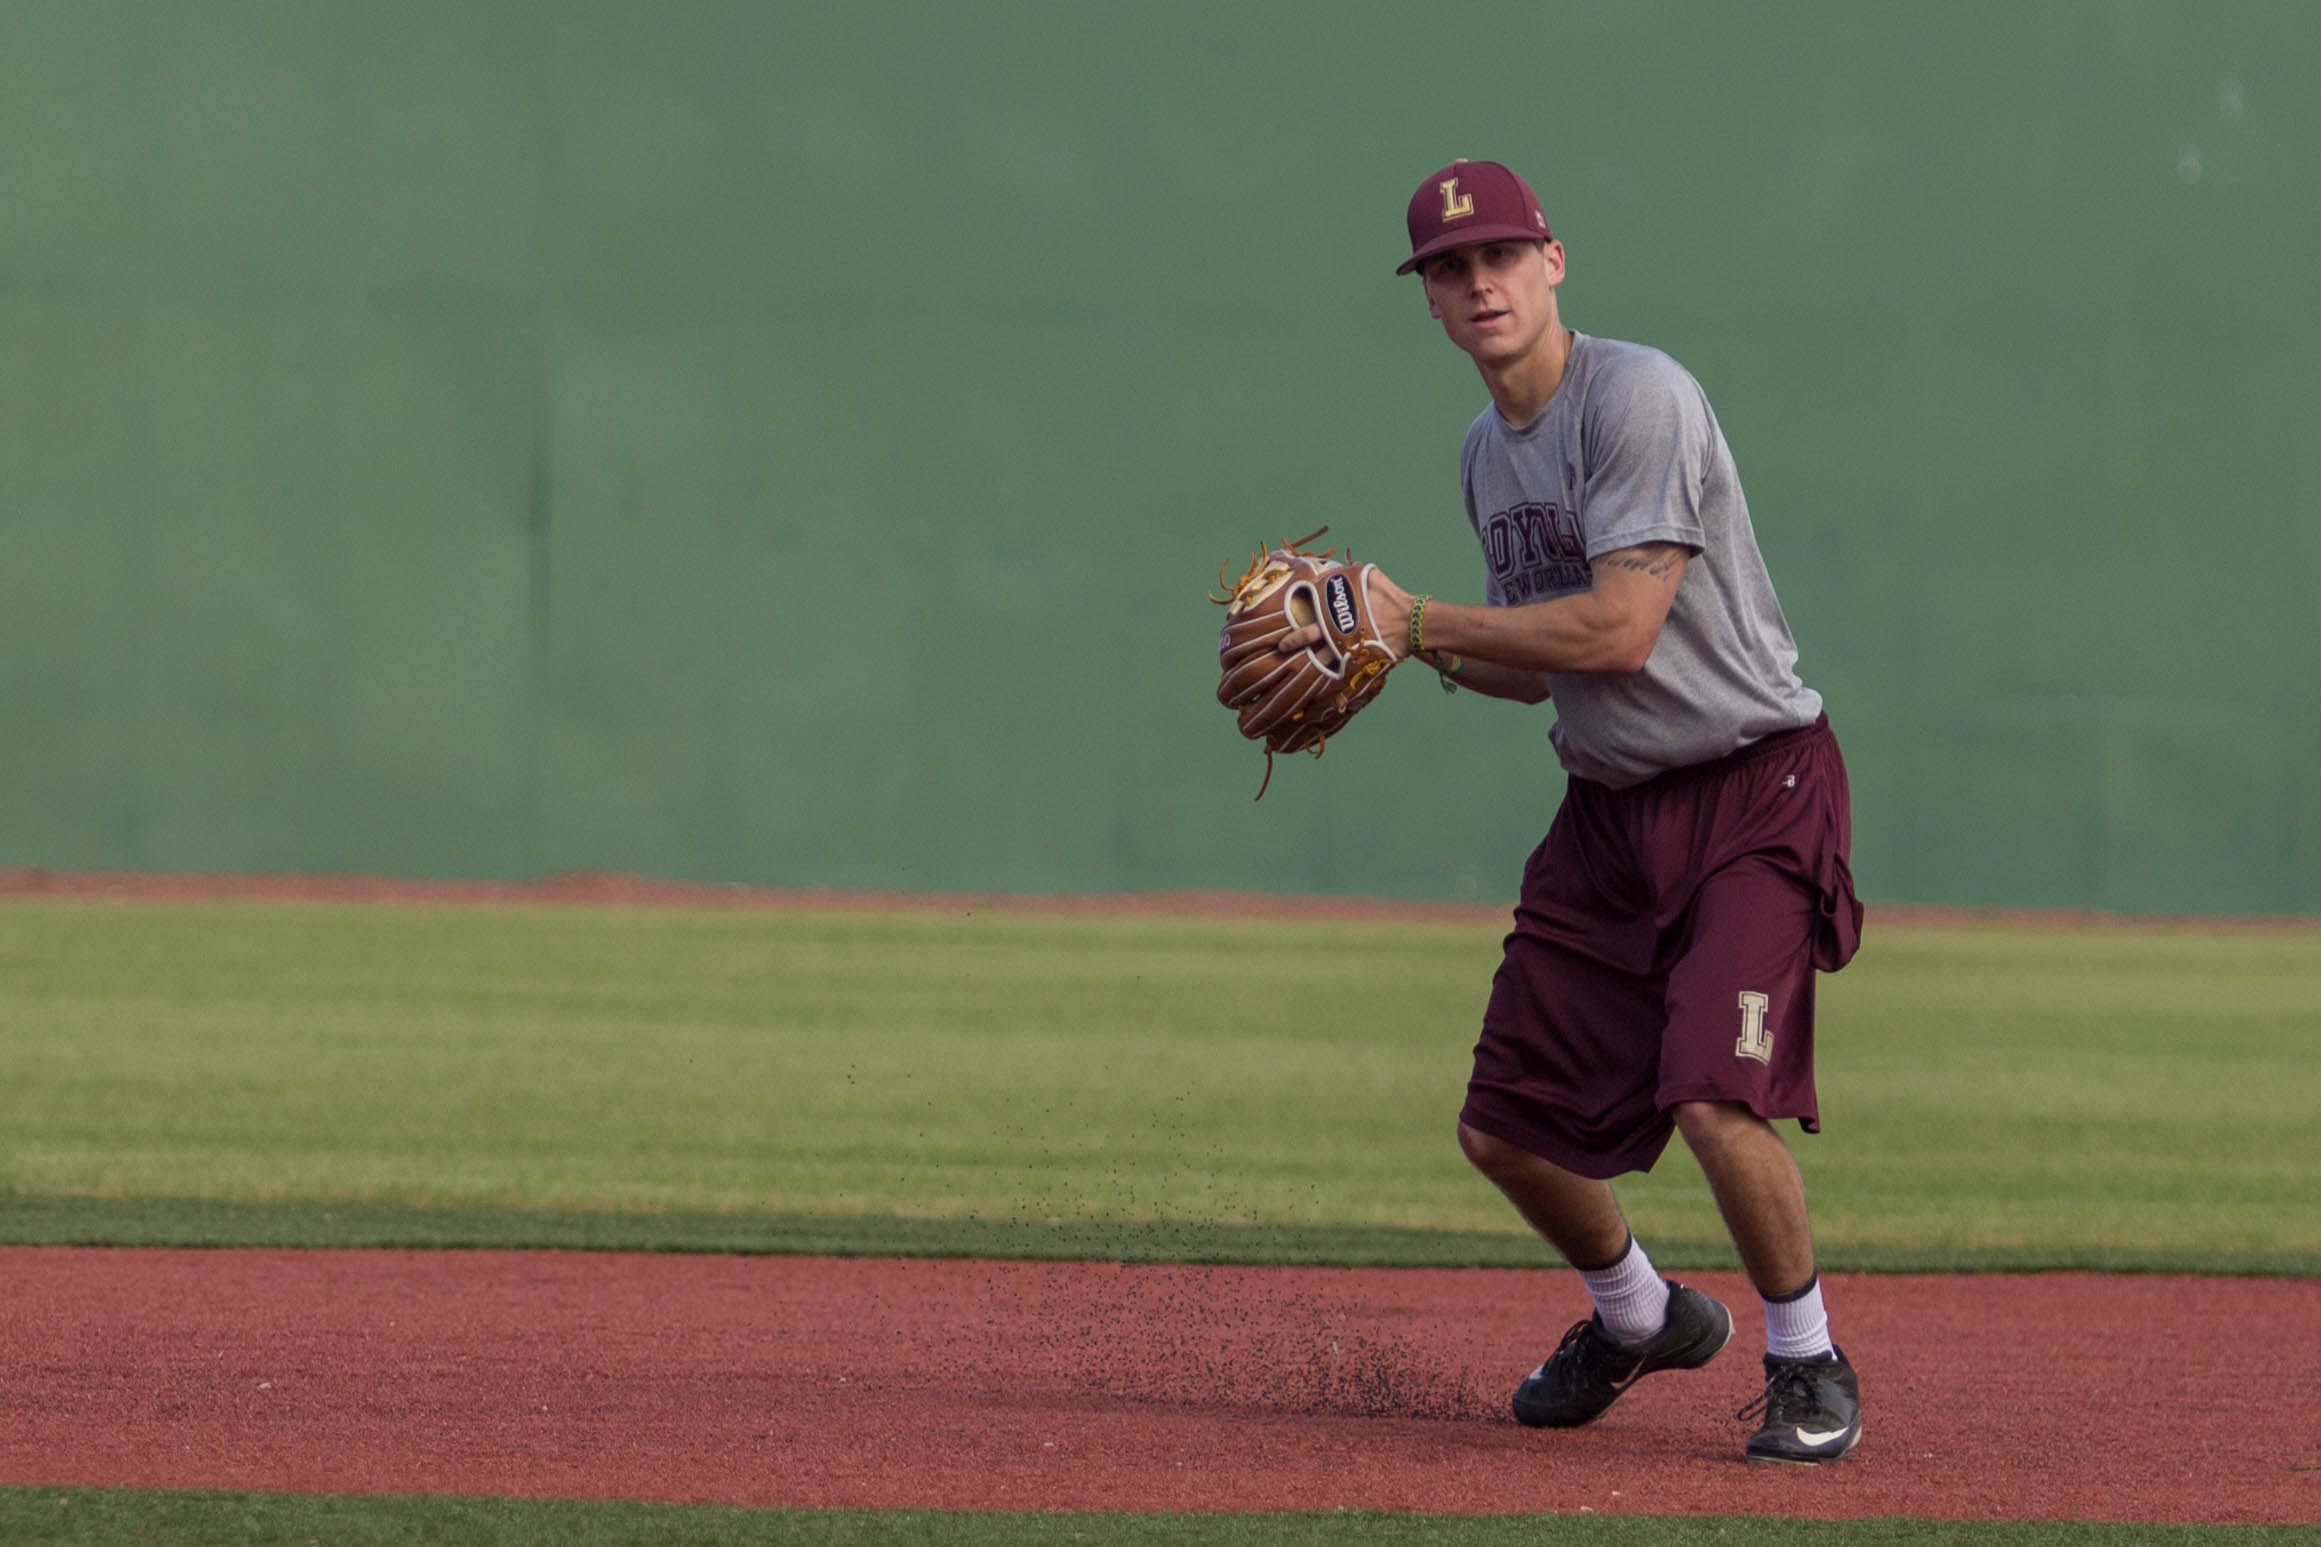 Blake Toscano, Loyola Wolfpack shortstop and business major, throws a baseball during practice, at the John A. Alario Sr. Event Center baseball diamond in Westwego, January, 14. The senior said he hopes to see some participation from Loyola students during the season. Photo credit: Osama Ayyad